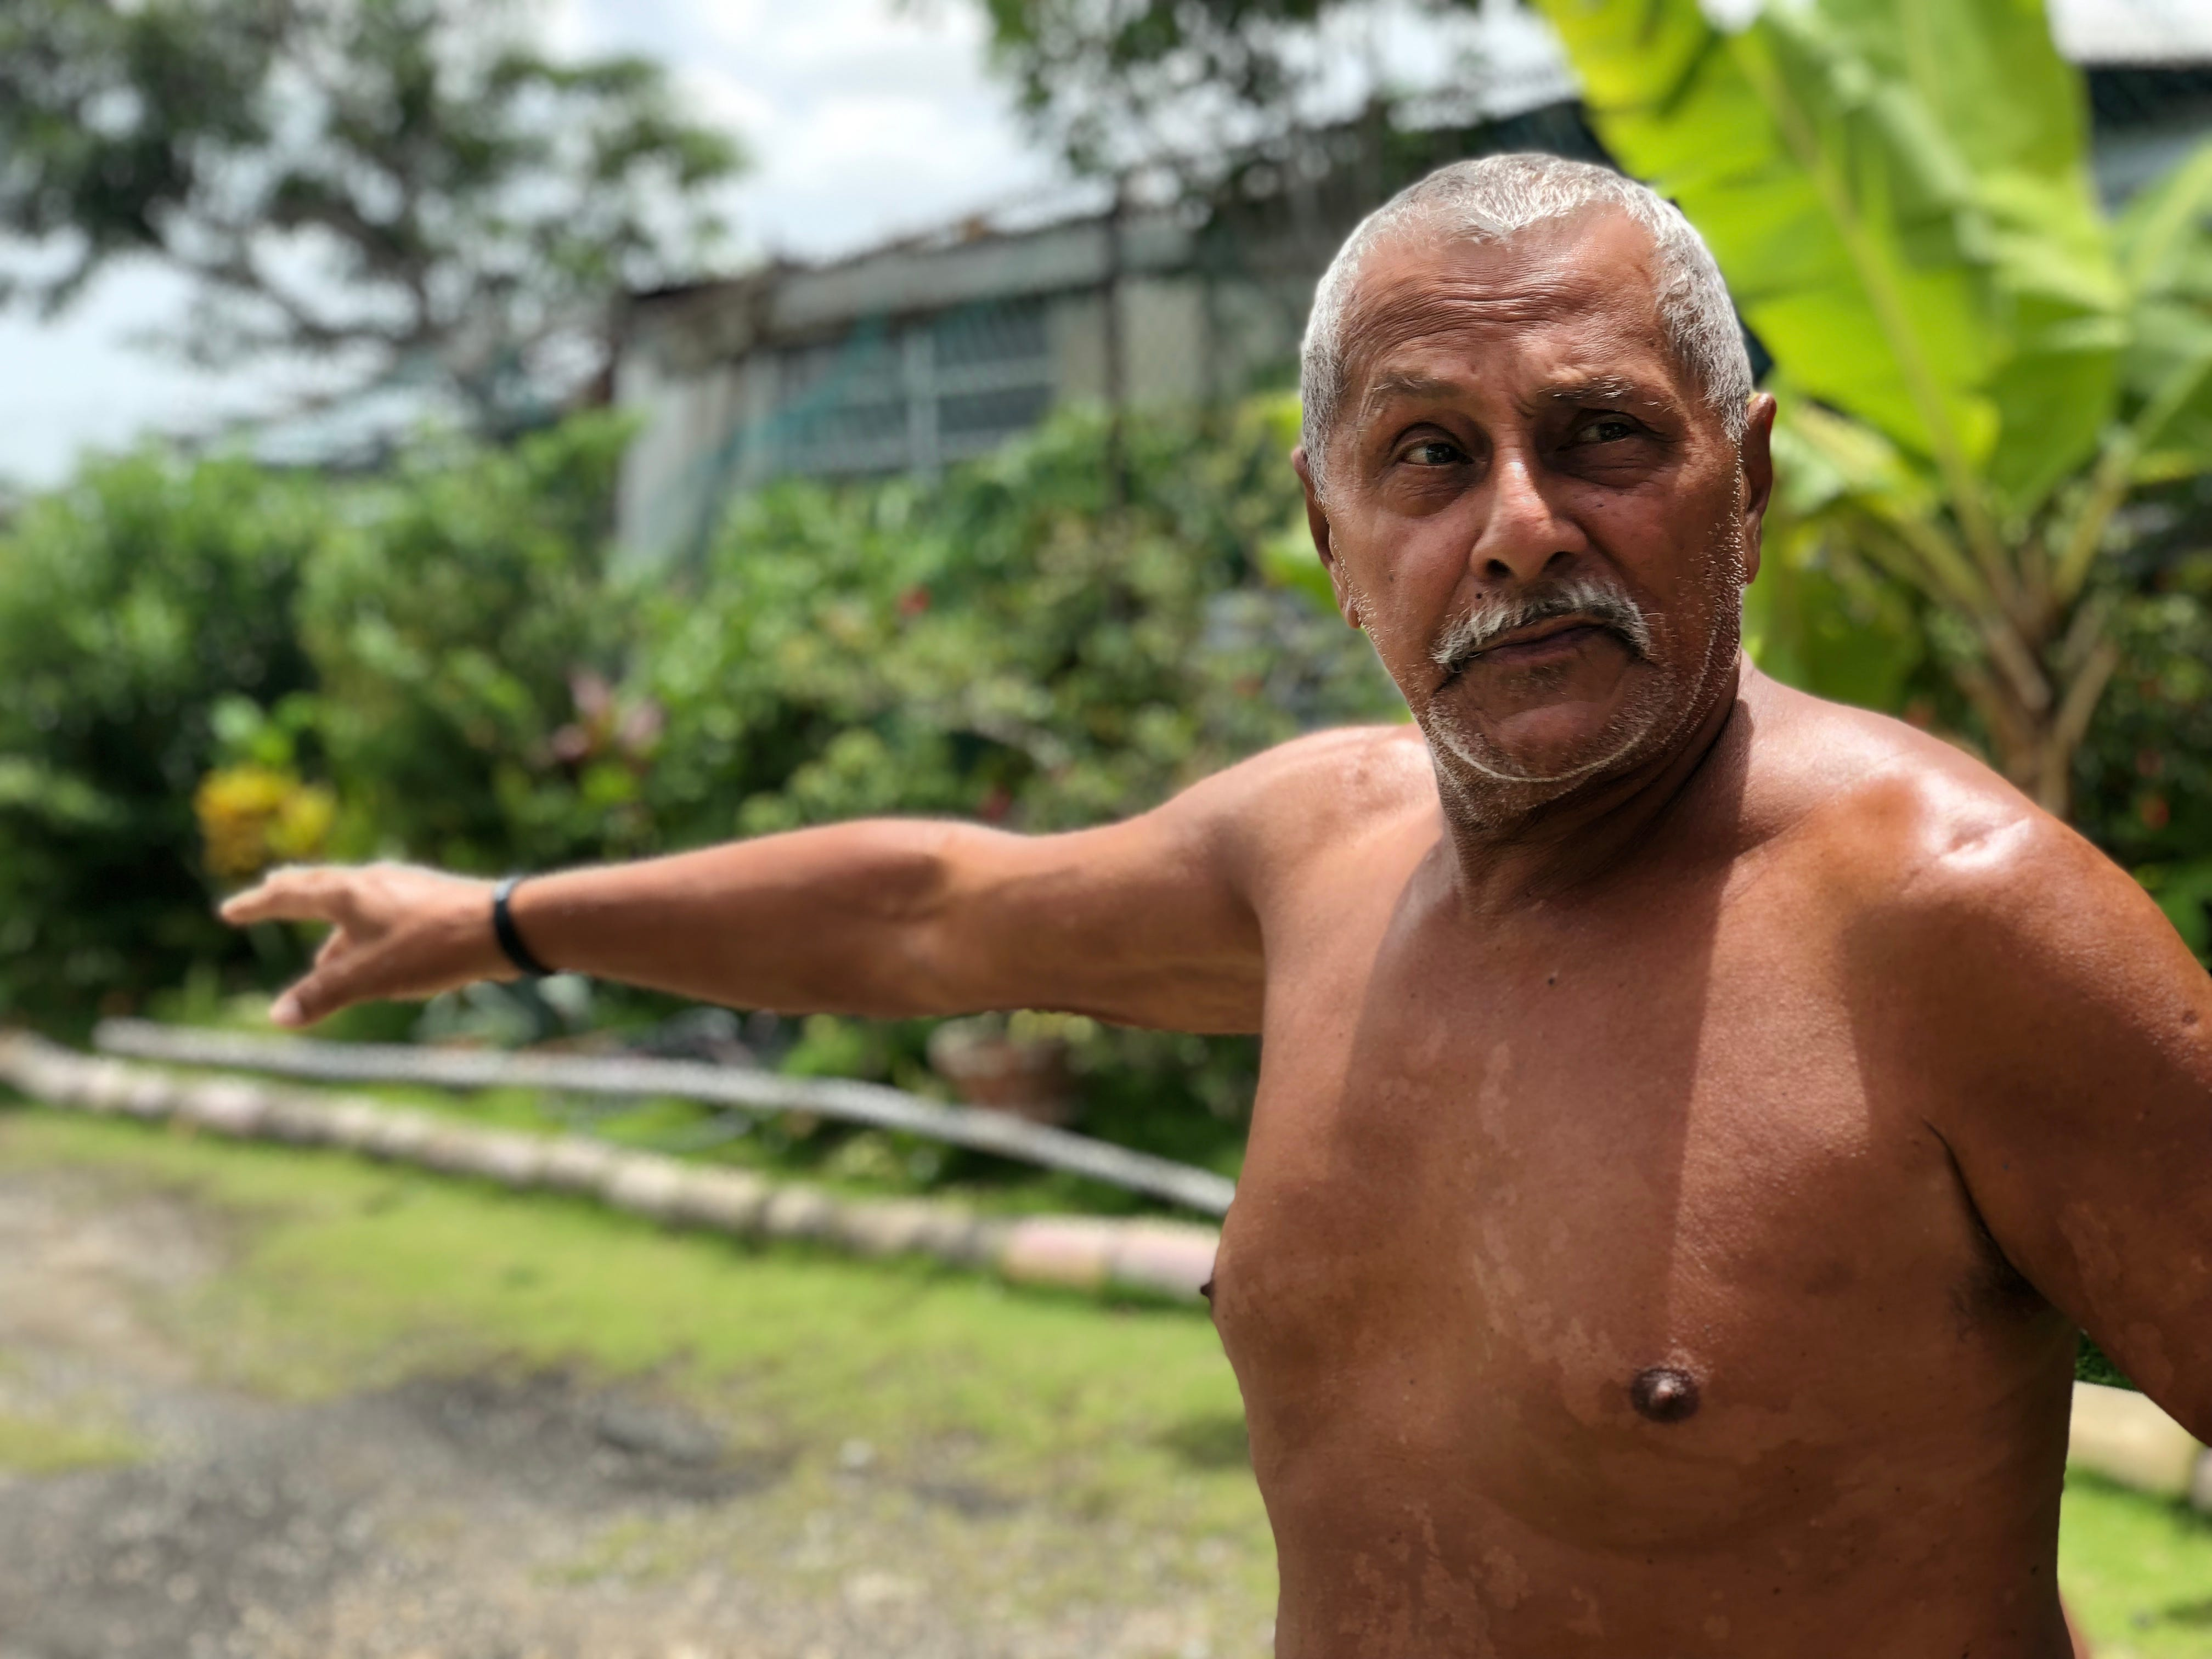 When municipal officials visited Victor Torres, 77, to offer him $128,000 for his home, he chased them off his lot with a machete. He said the way his neighbors have been displaced from his neighborhood has been heartbreaking.